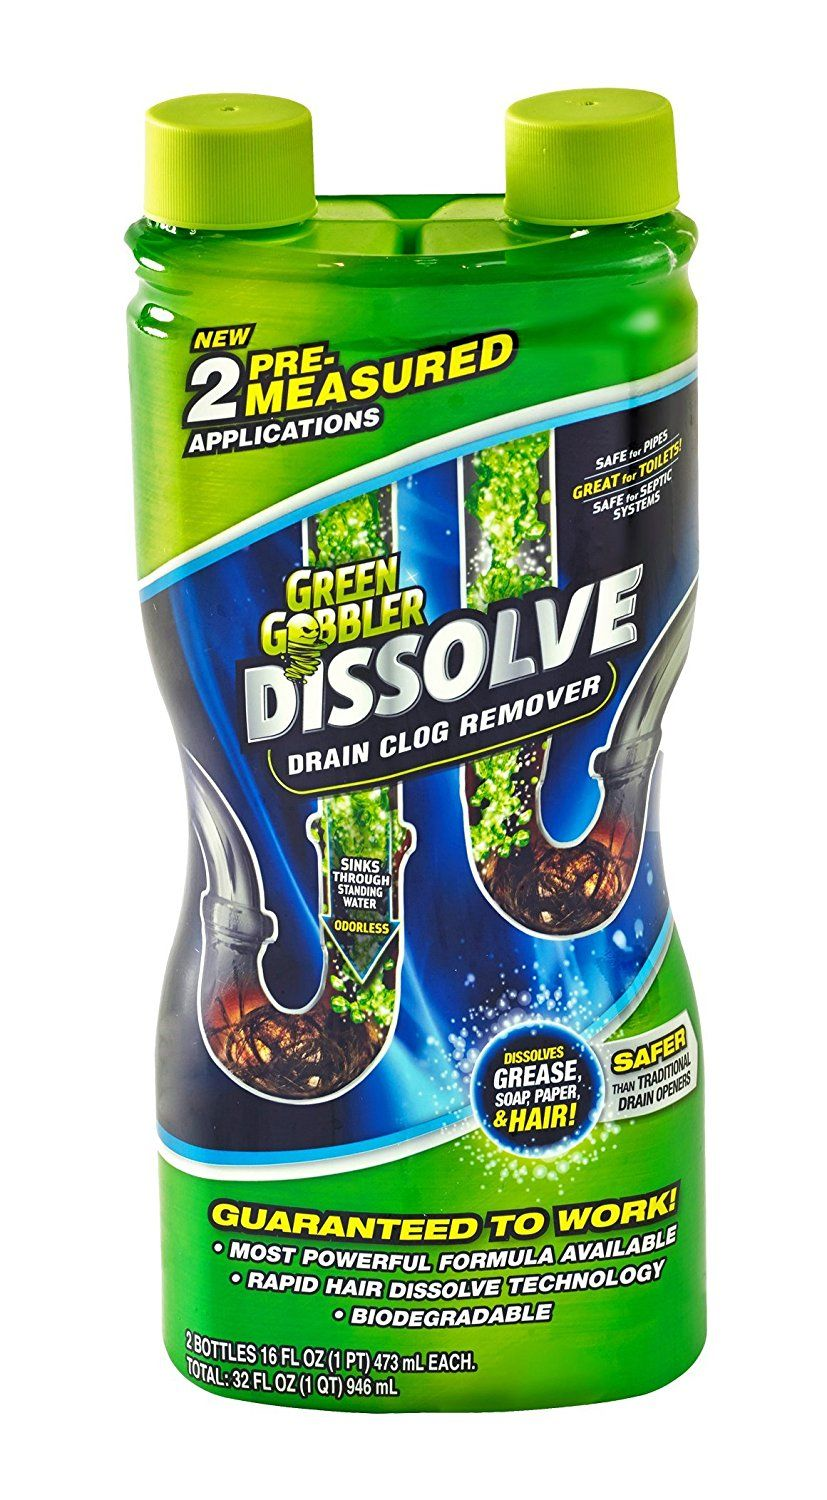 10 Best Drain Cleaner Reviews Powerful Cleaners For Clog Free